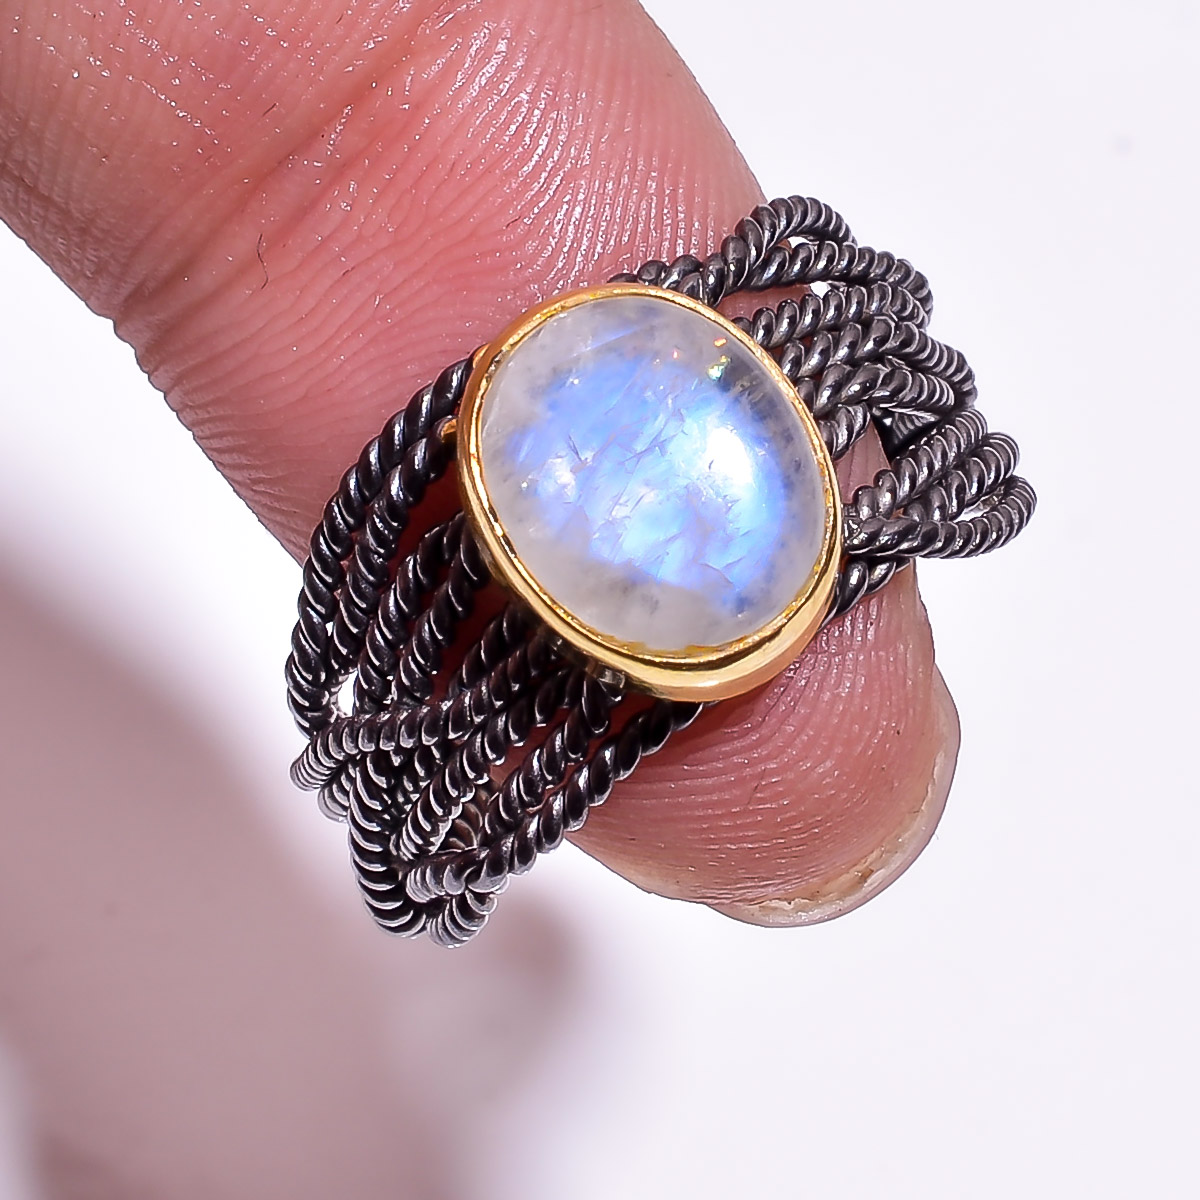 925 Sterling Silver Gold Plated & Black Rhodium Two Tone Rainbow Moonstone Adjustable Ring Size 8.5